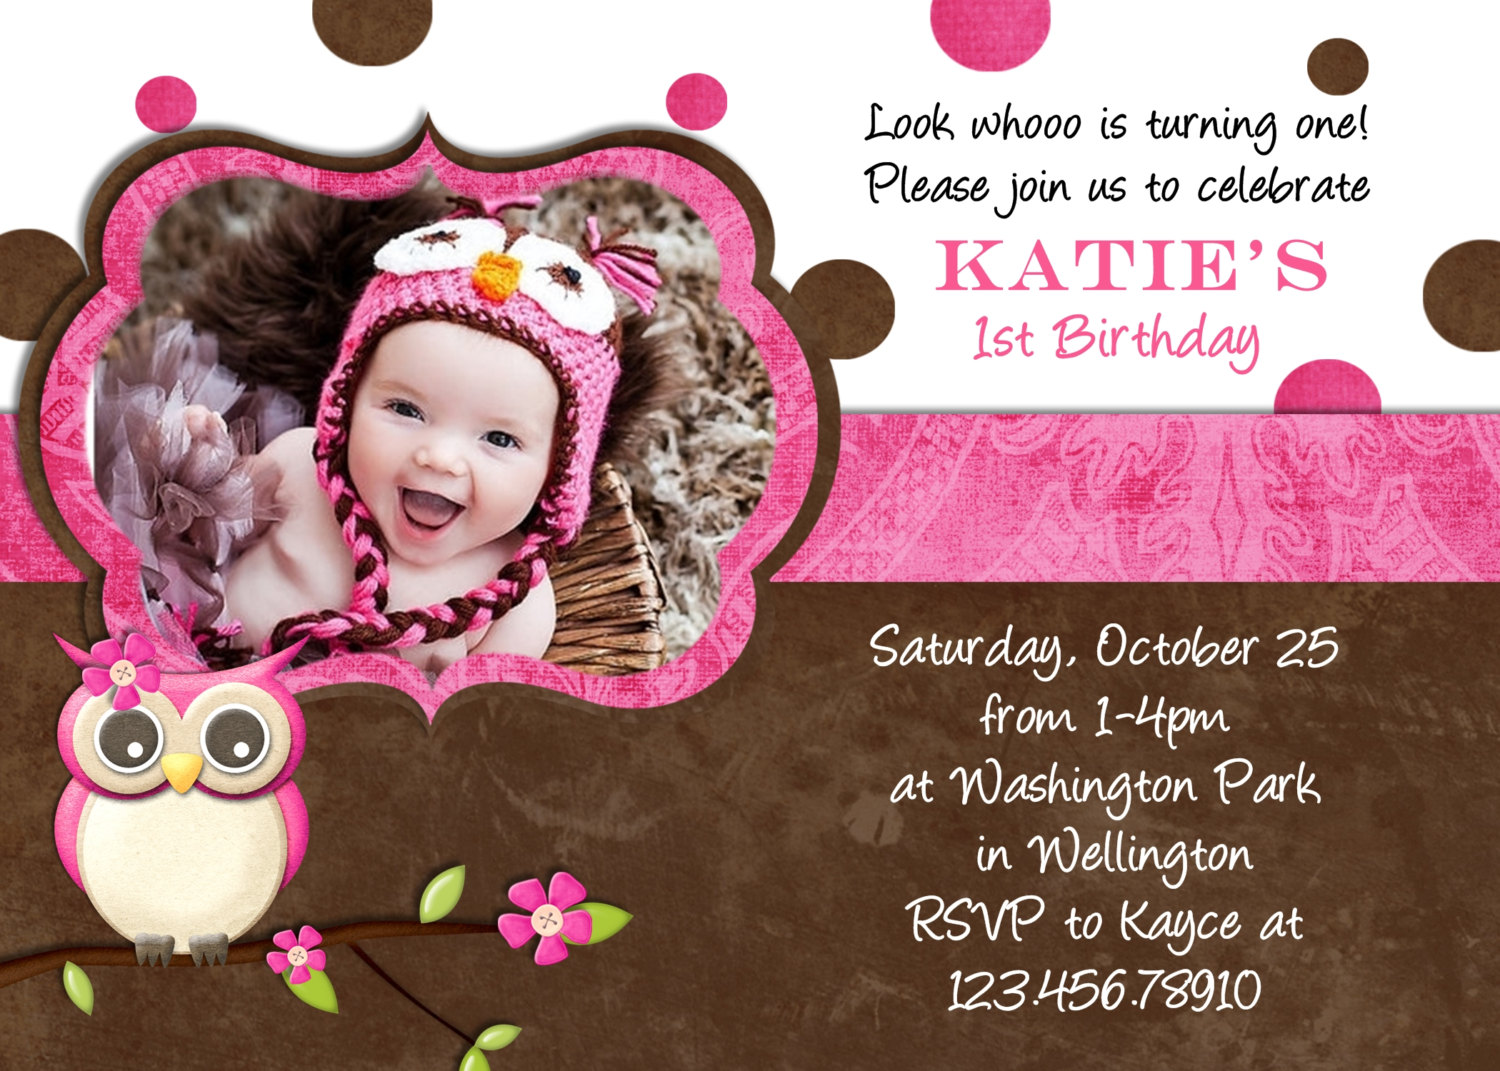 birthday invitation design ideas ; nice-ideas-birthday-invitation-cards-design-brown-color-white-background-real-photo-owl-pink-beautiful